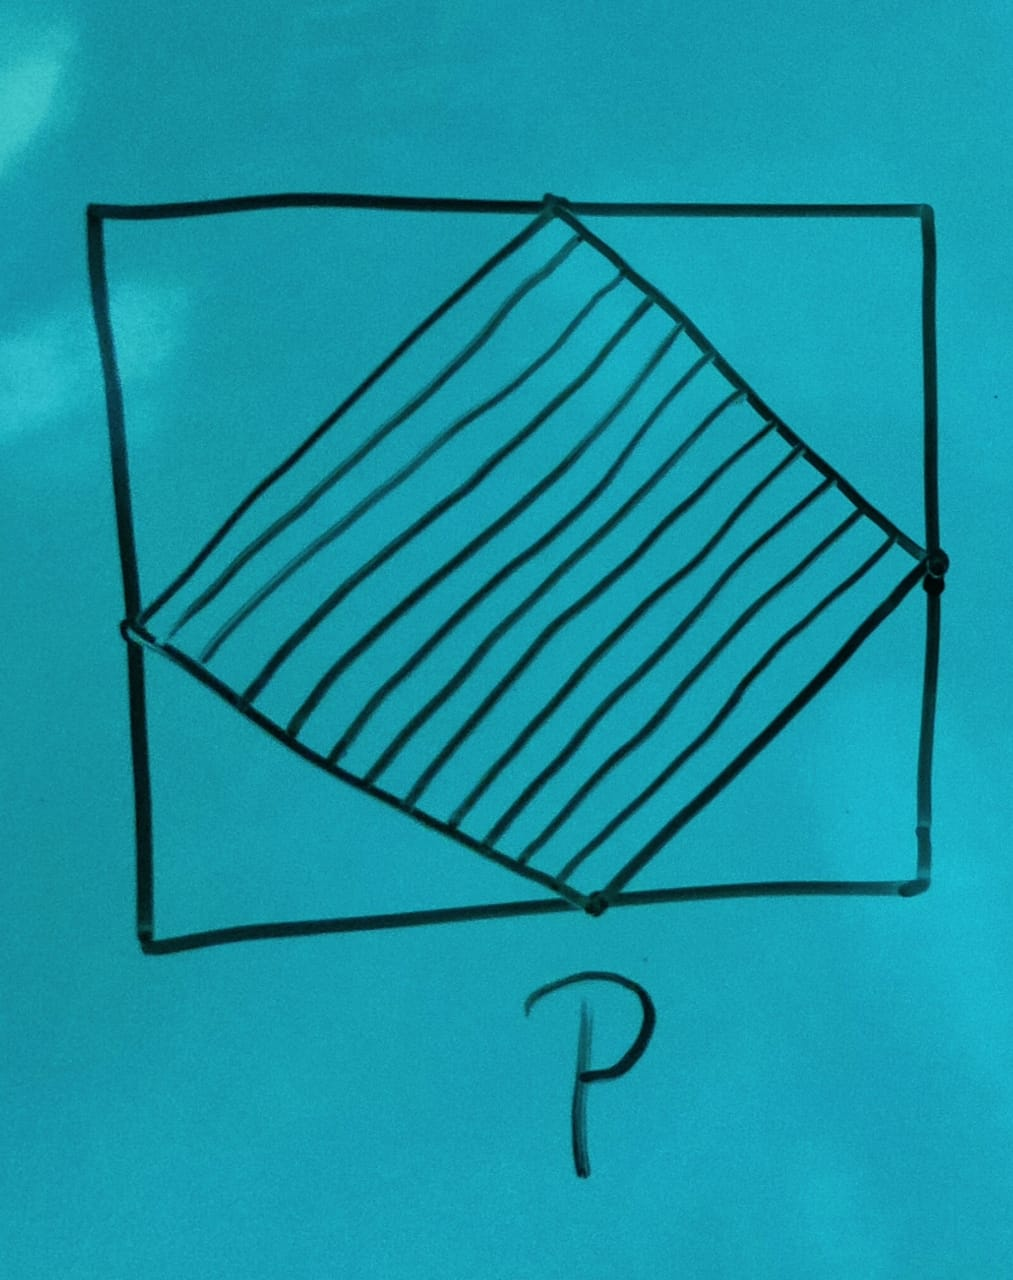 Congruent Squares In The Picture Below With The Midpoints are Given. The Relation Between Shaded Areas P Q and R is: